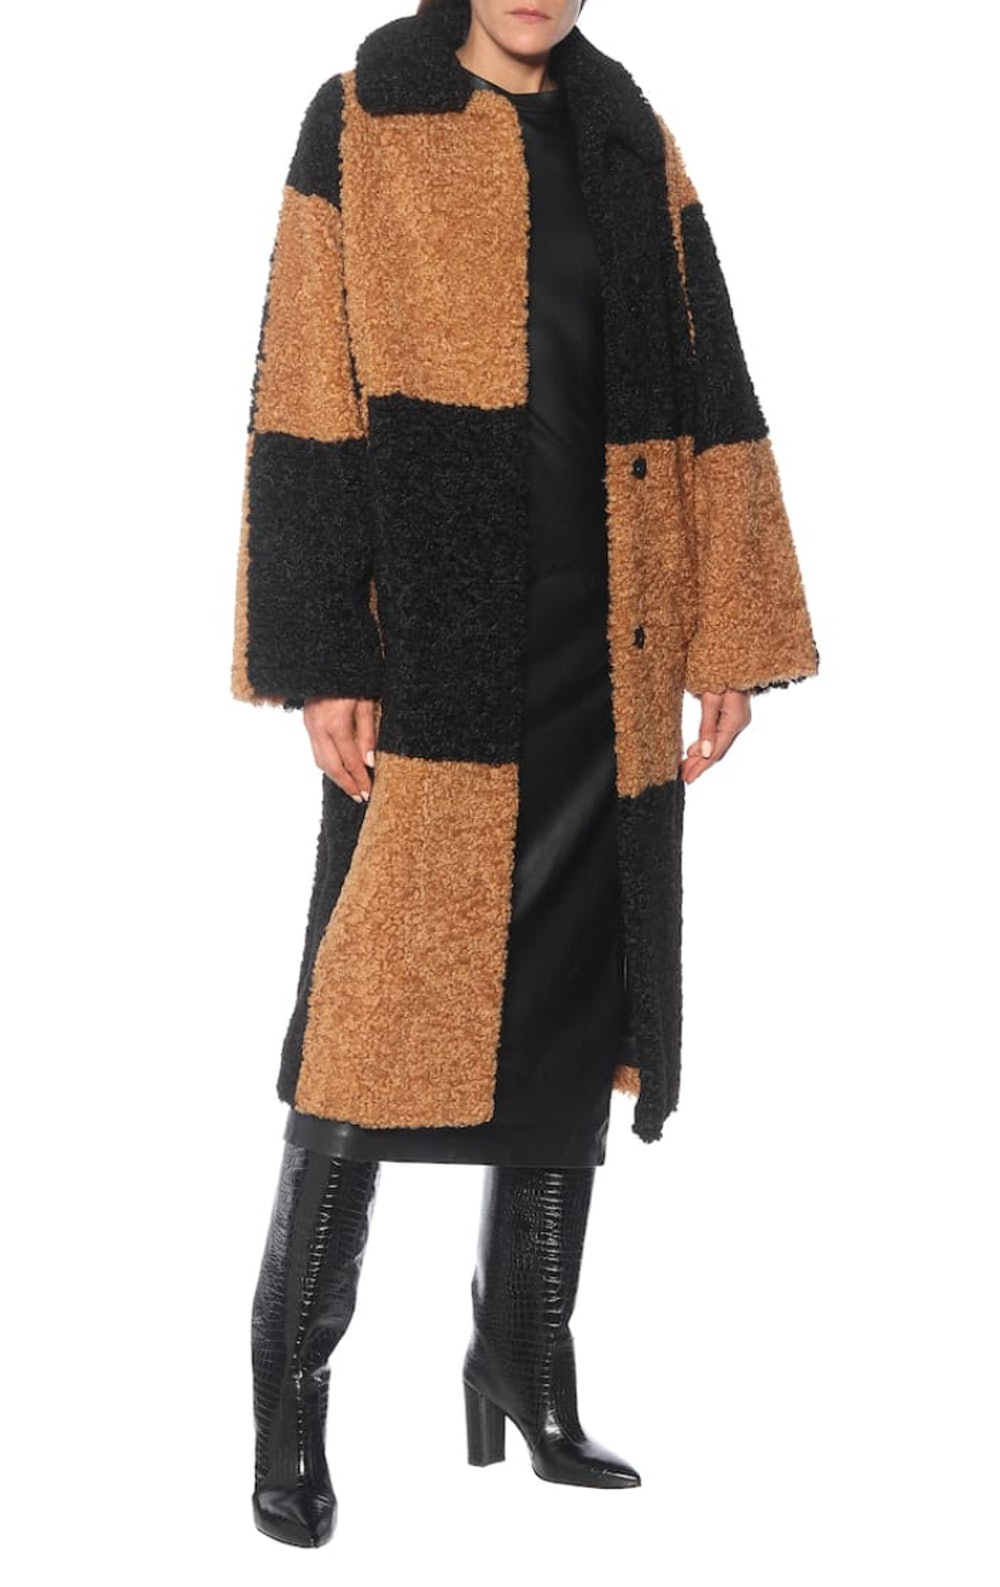 Nikki Checked Faux Shearling Coat